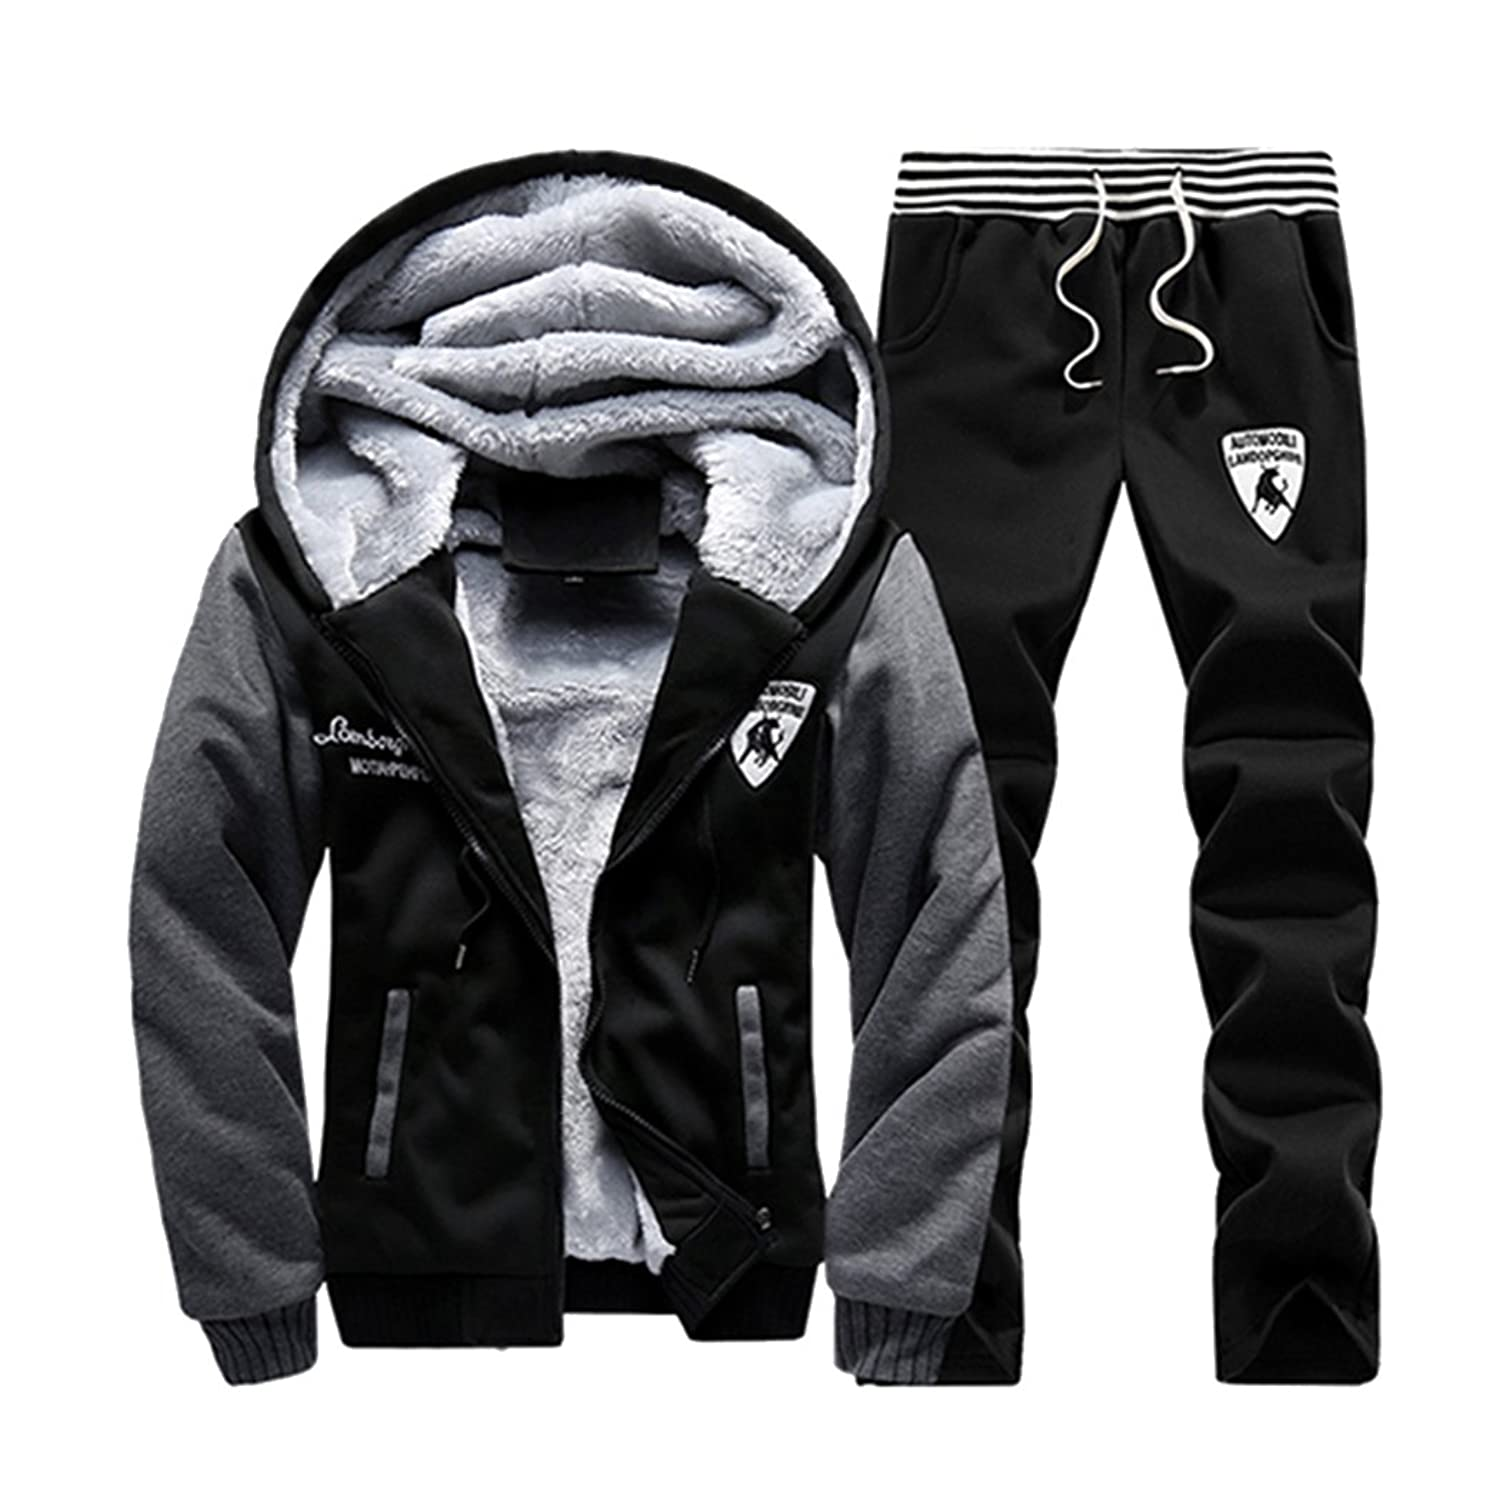 Mens Warm Fit Jogging Sweat Suits Casual Tracksuits + Pants at ...